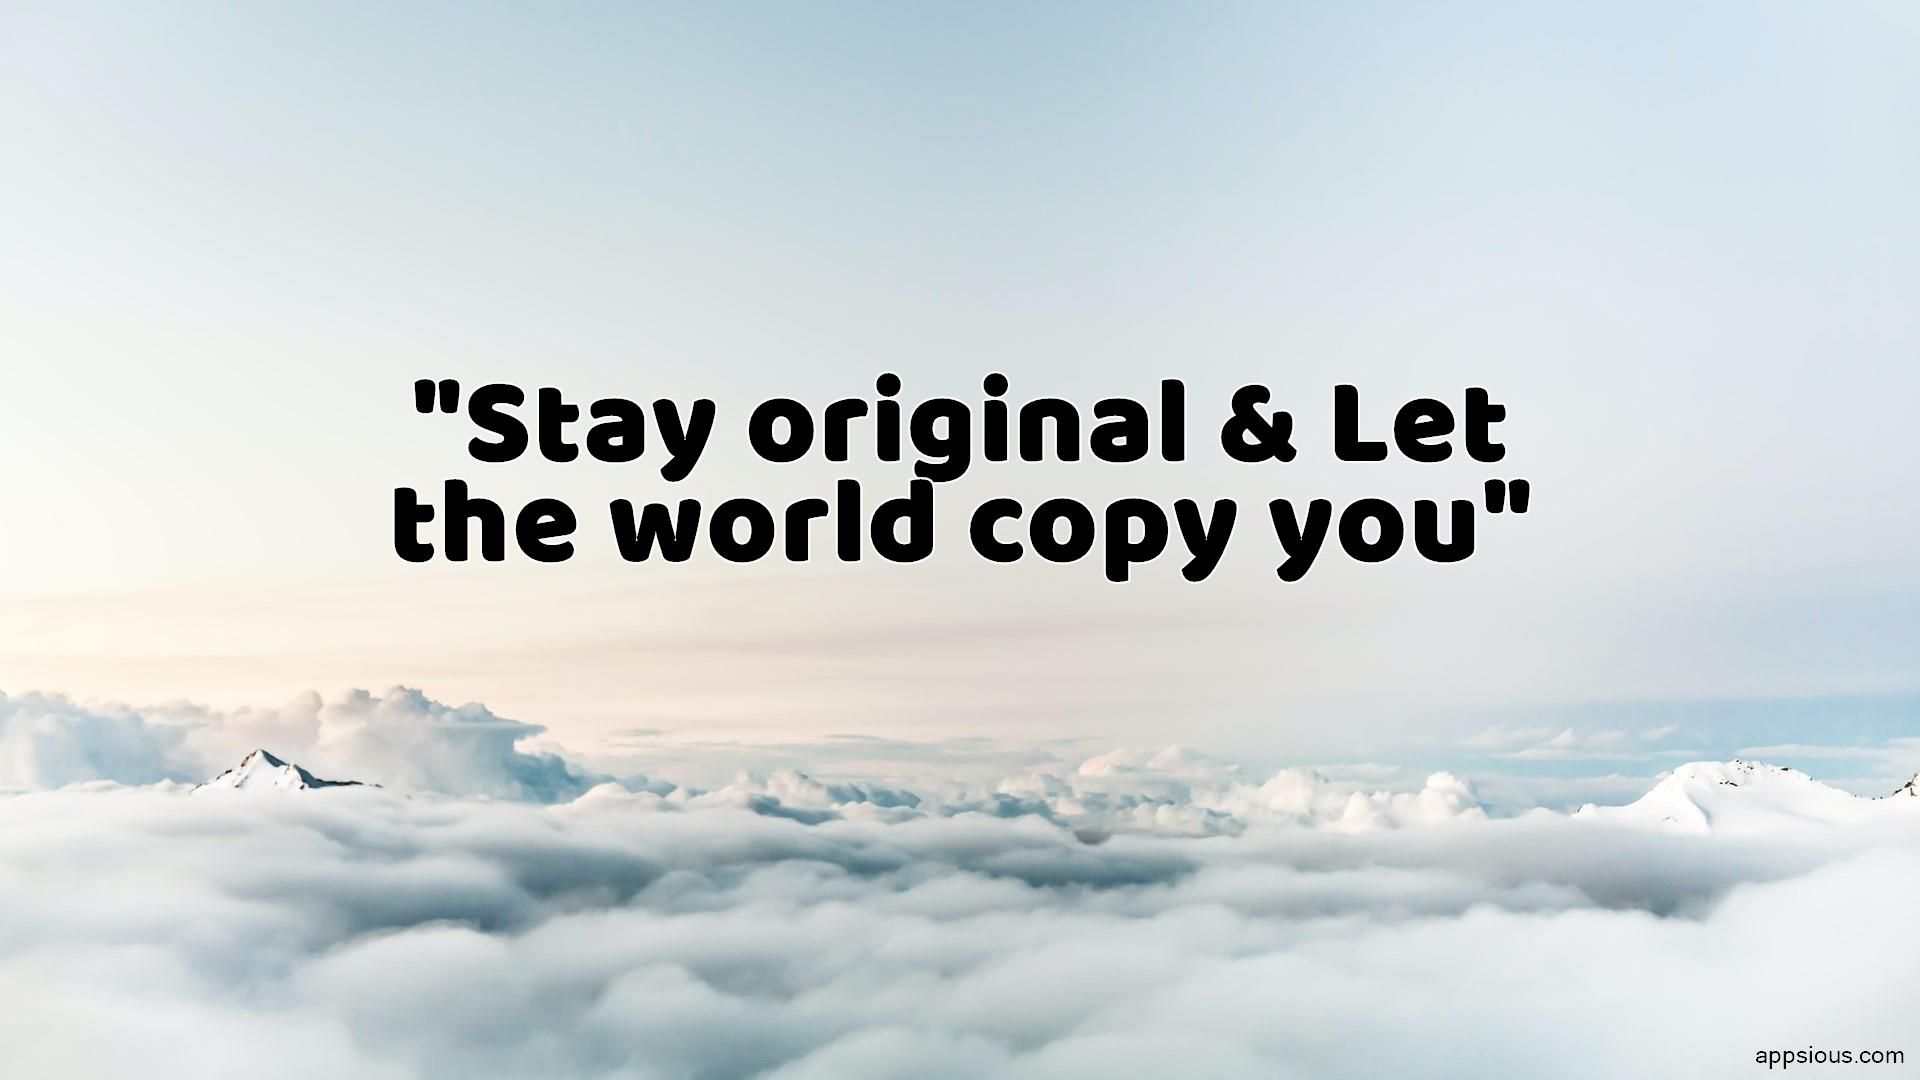 Stay original & Let the world copy you